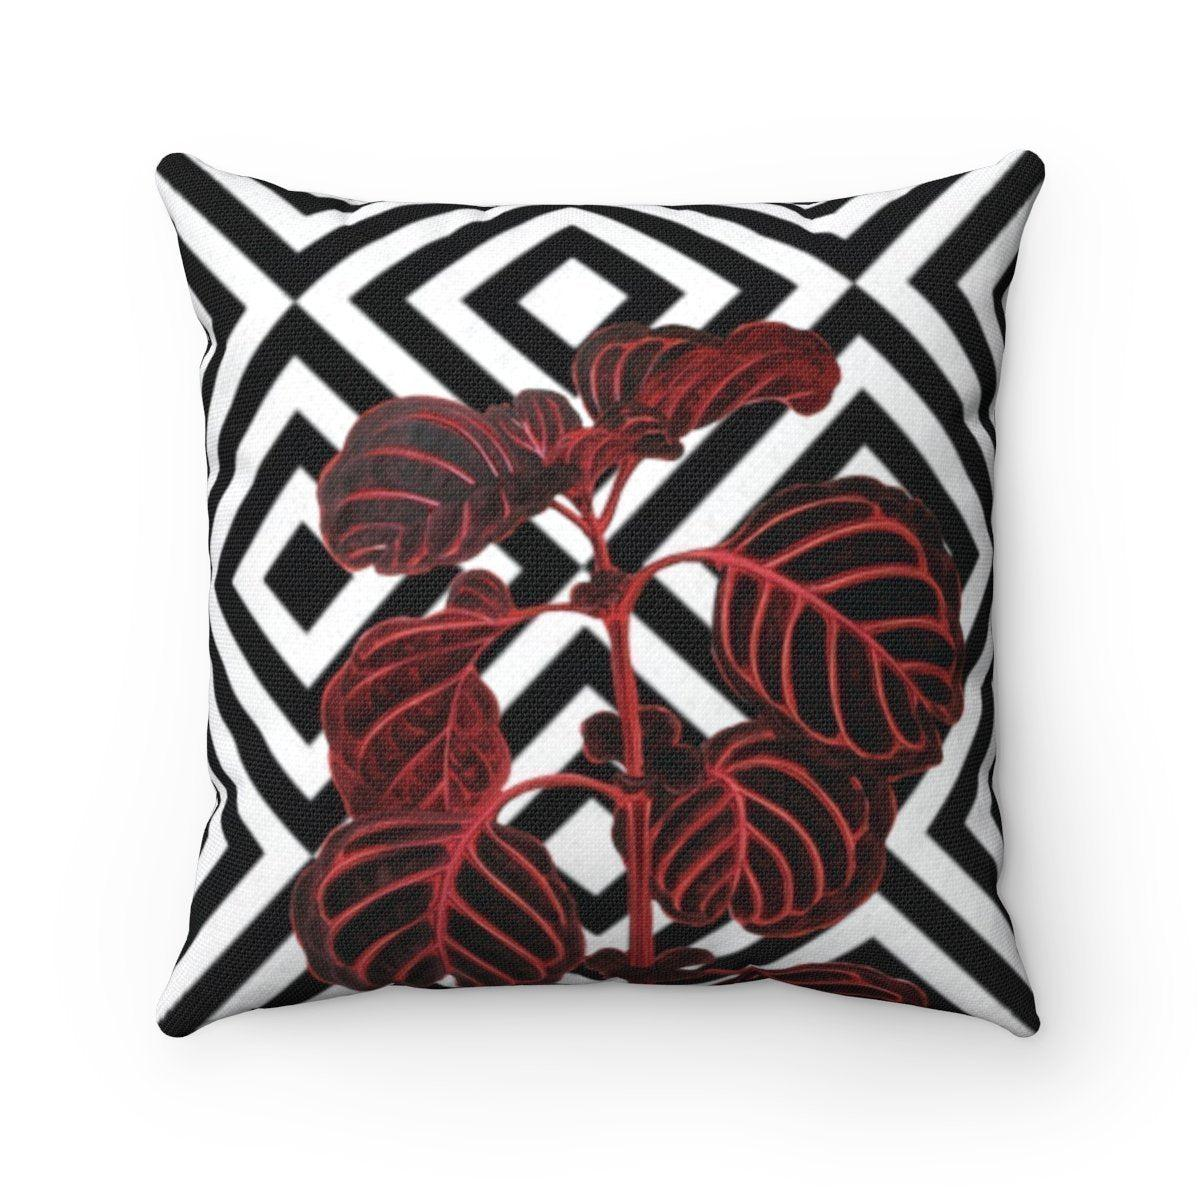 Luxury leaves abstract decorative cushion cover-Home Decor - Decorative Accents - Pillows & Throws - Decorative Pillows-Maison d'Elite-14x14-Très Elite